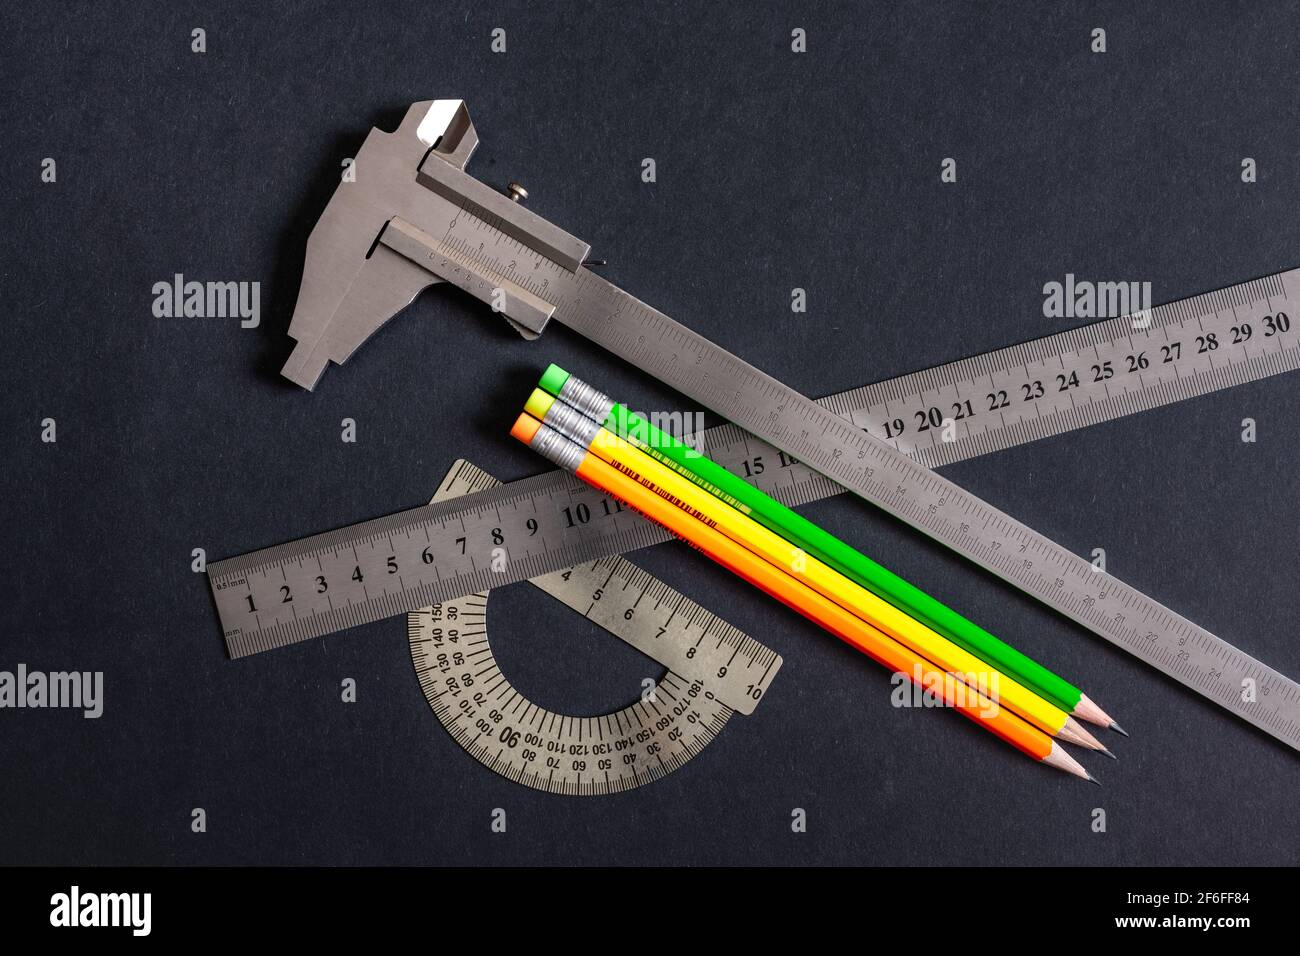 Goniometer and Ruler and Vernier caliper three types on dark grey-black patterns background. Sketching pencils green yellow orange. Non-color, monochr Stock Photo